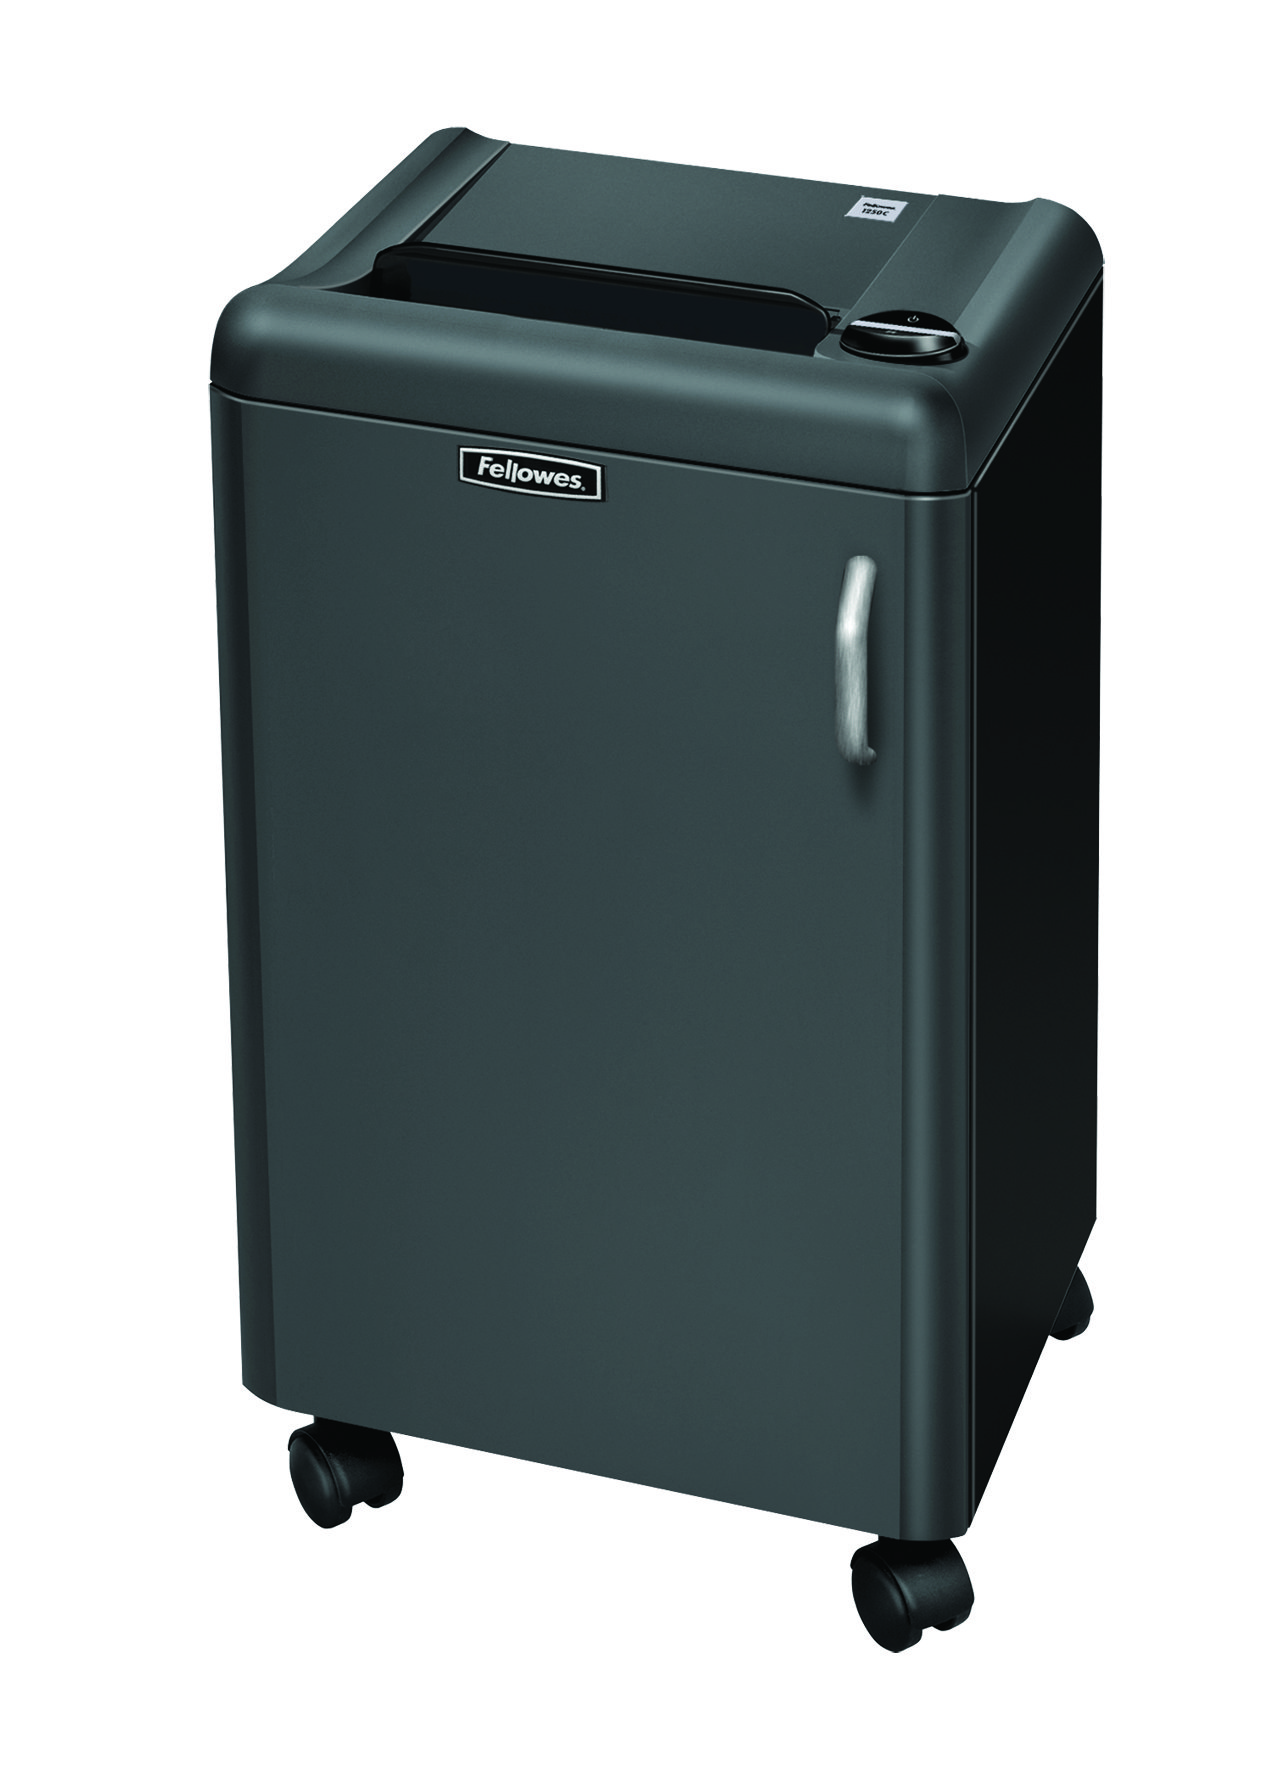 Destruidora de Papel Fellowes 1250C, 17 Fls, 35L, CD/DVDs com Rodas